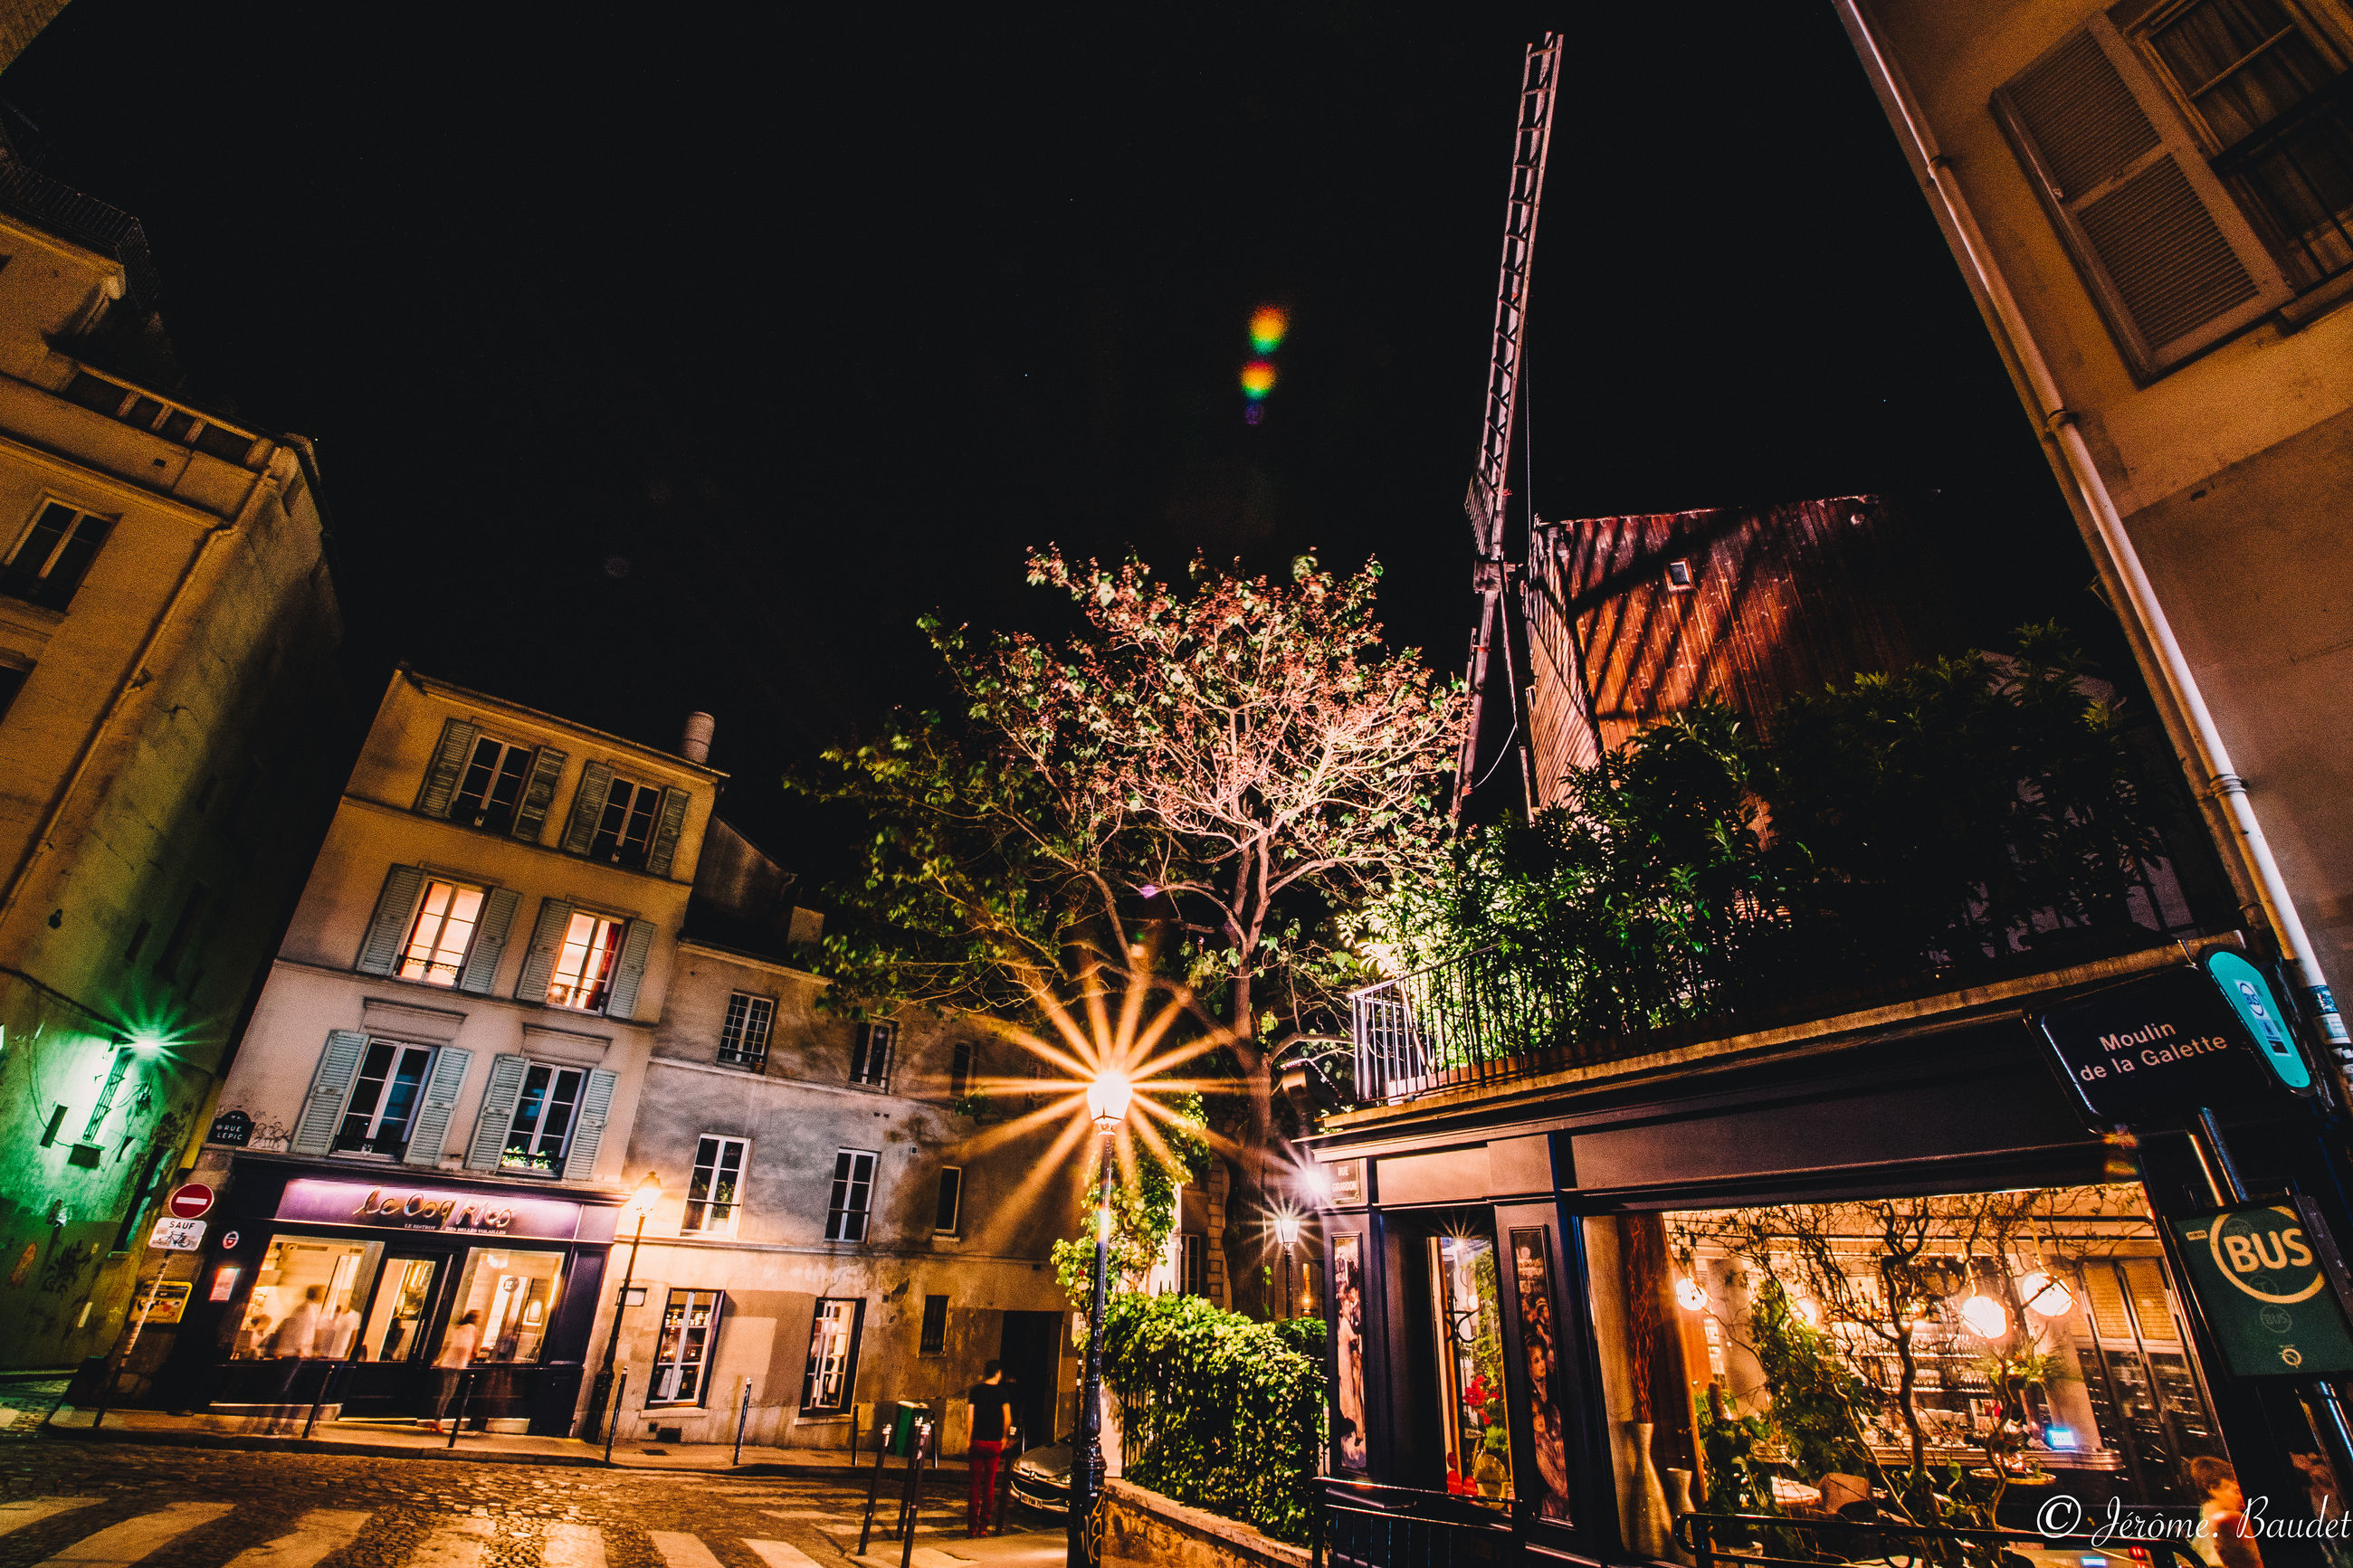 night, illuminated, building exterior, architecture, built structure, tree, building, city, plant, lighting equipment, no people, low angle view, nature, celebration, glowing, christmas, decoration, outdoors, motion, light